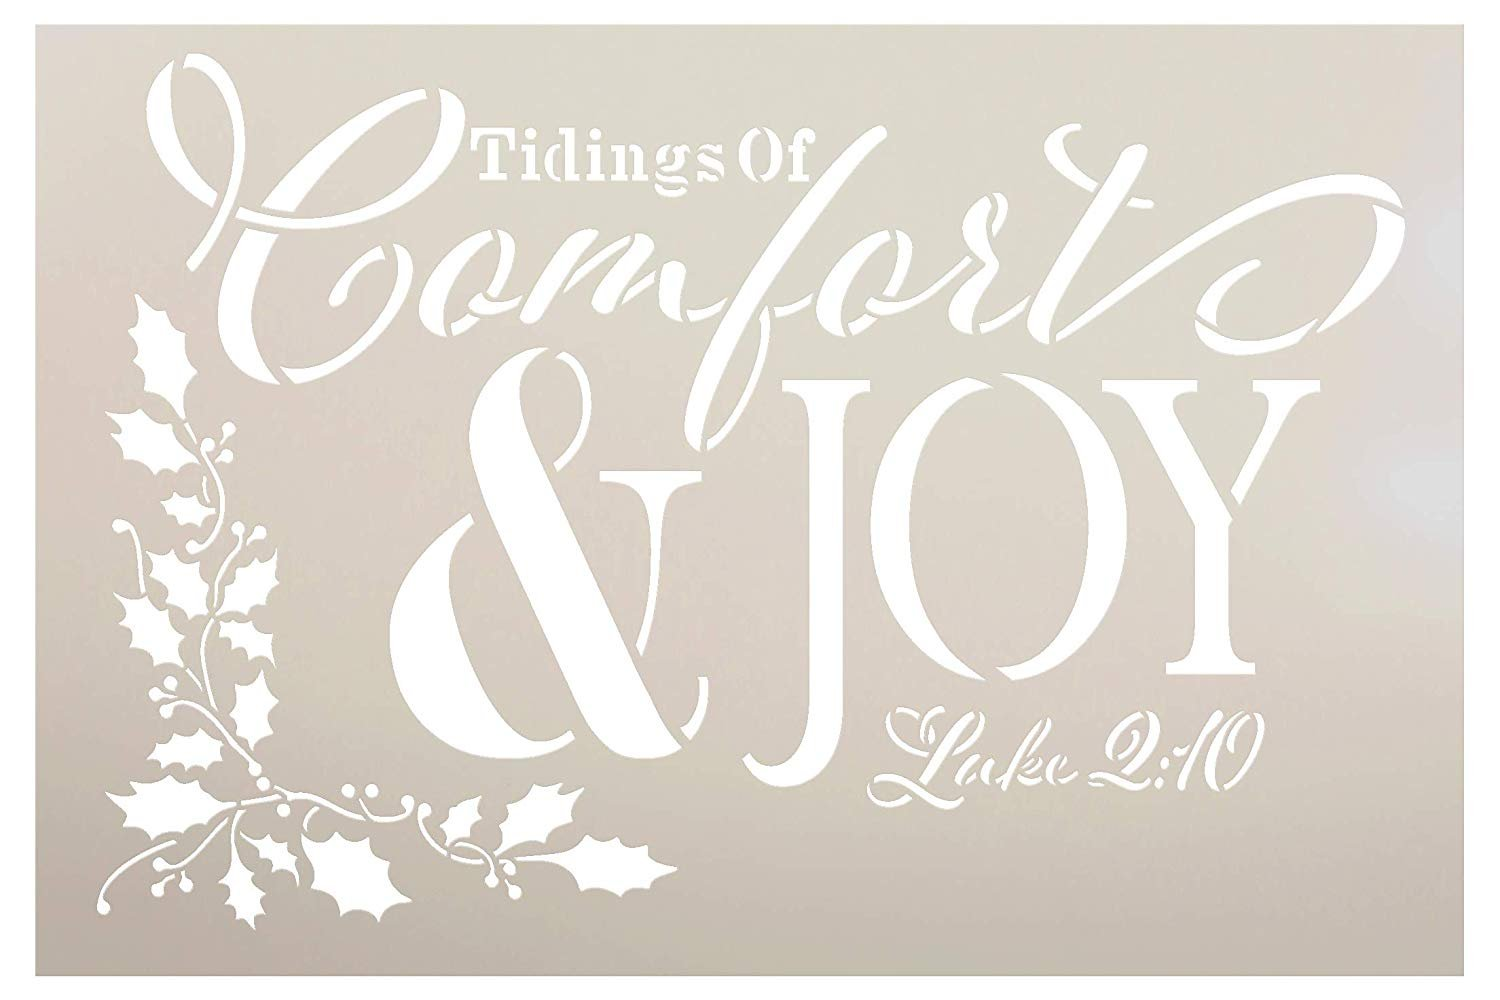 Tidings of Comfort & Joy Luke 2:10 Stencil by StudioR12 | Reusable Mylar Template Paint Wood Sign | Craft Rustic Christmas Scripture Home Decor | Holiday DIY Faith Gift Holly | SELECT SIZE